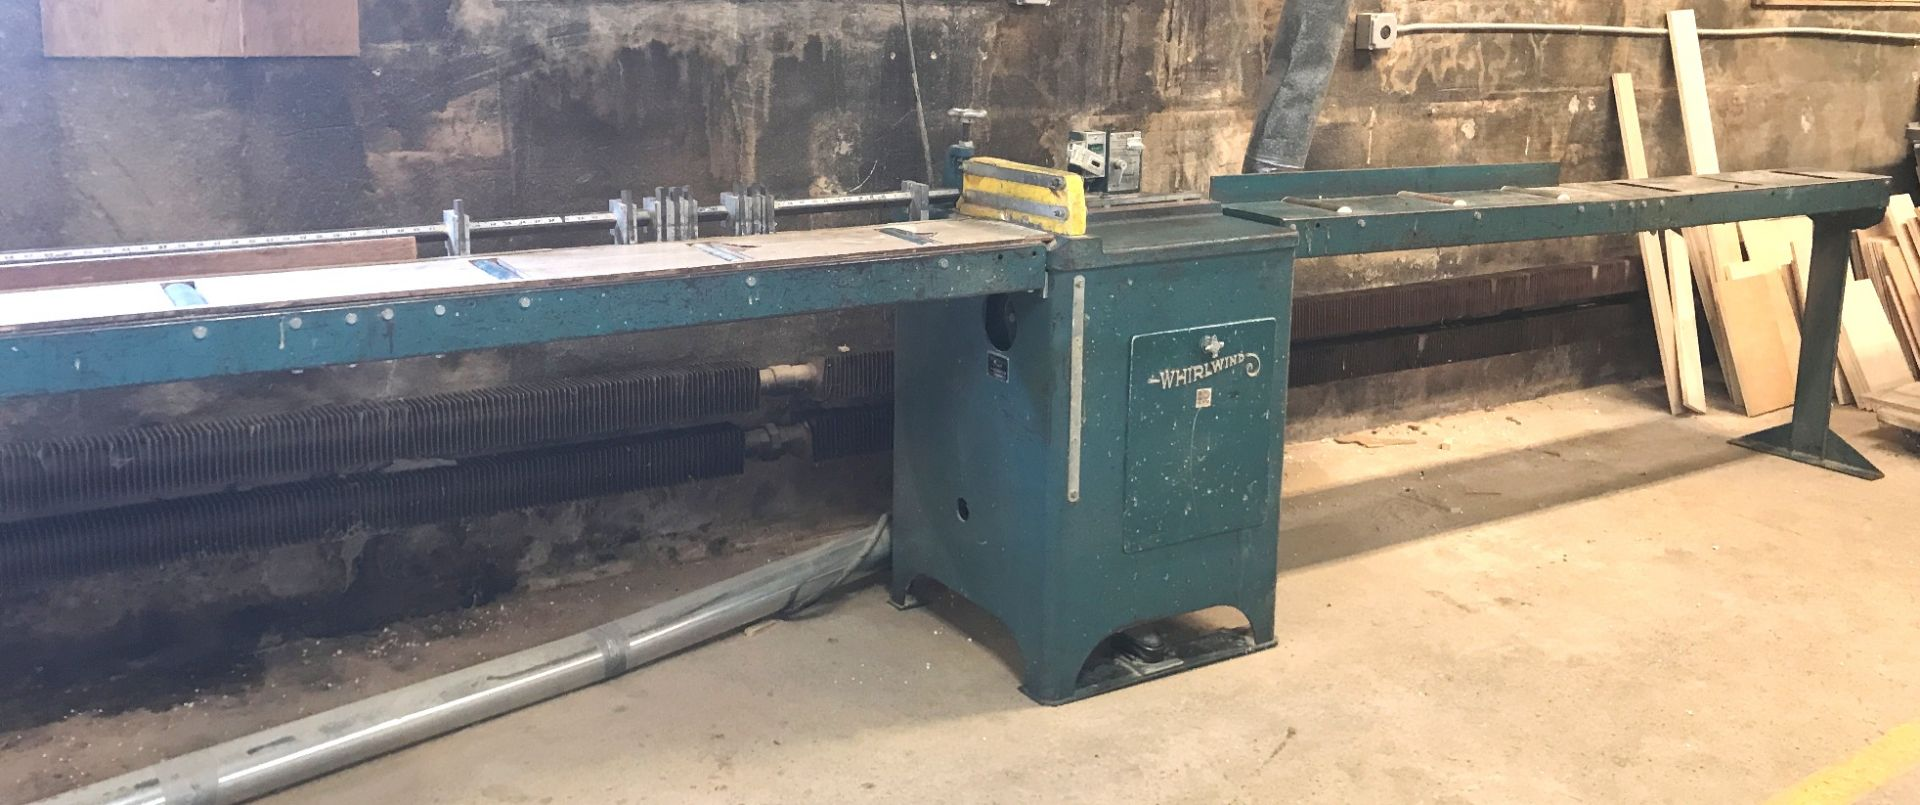 Whirlwind Mod.100L Cut Off Saw - Image 3 of 6